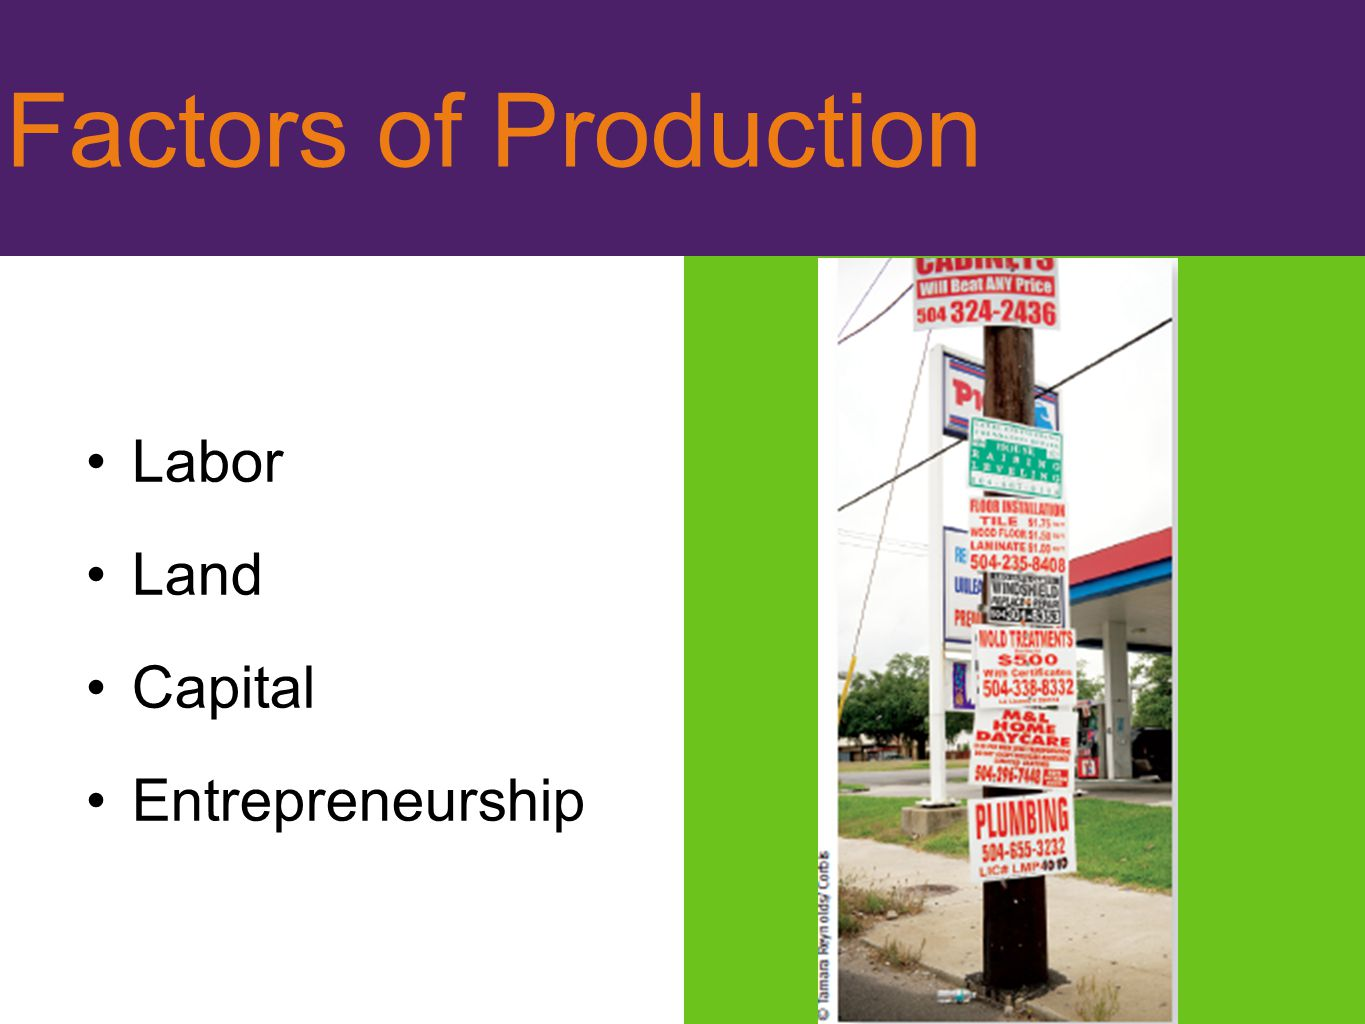 factors of production land labor capital and entrepreneur Cio network insights and ideas for technology leaders opinions expressed by forbes contributors are their own classical economic theory describes three primary factors, or inputs, to the production of any good or service: land, labor, and capital these factors facilitate production, but do not.